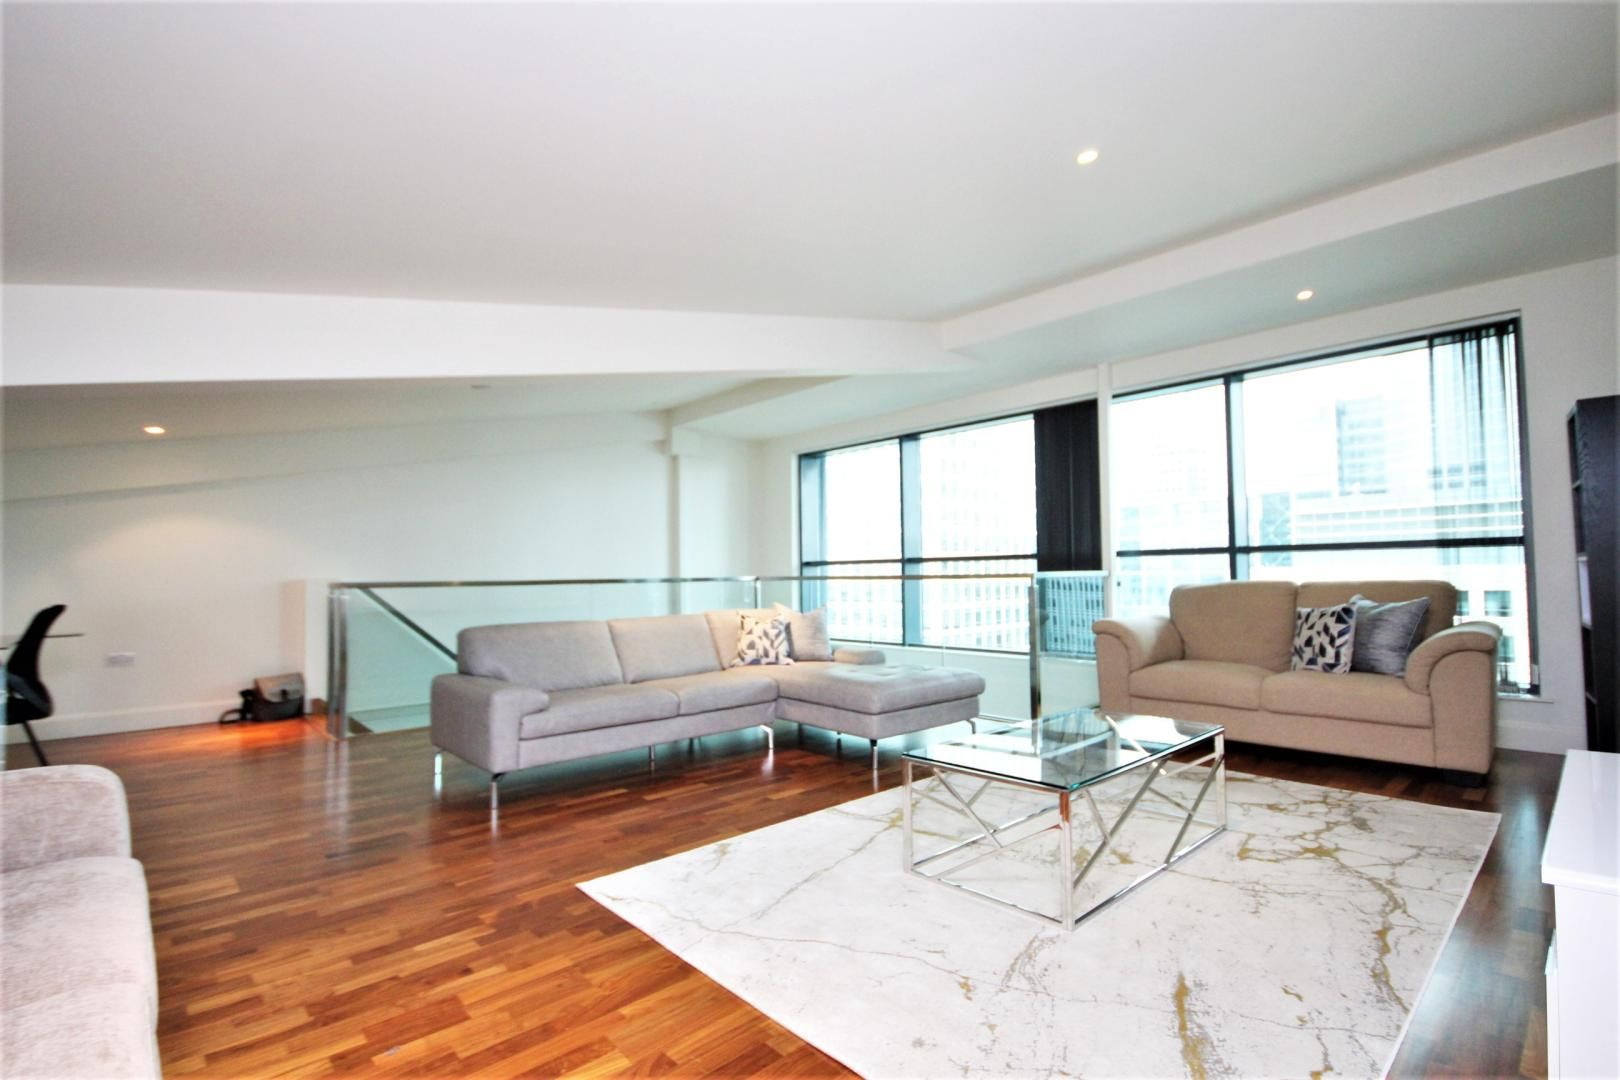 2 bed flat to rent in South Quay Square, E14